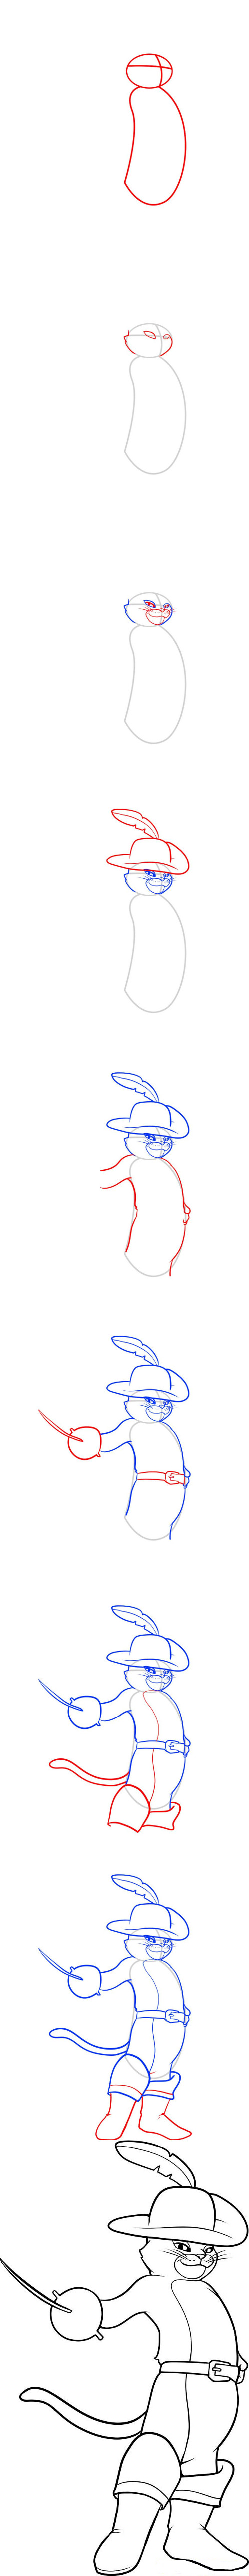 How to draw Puss in Boots